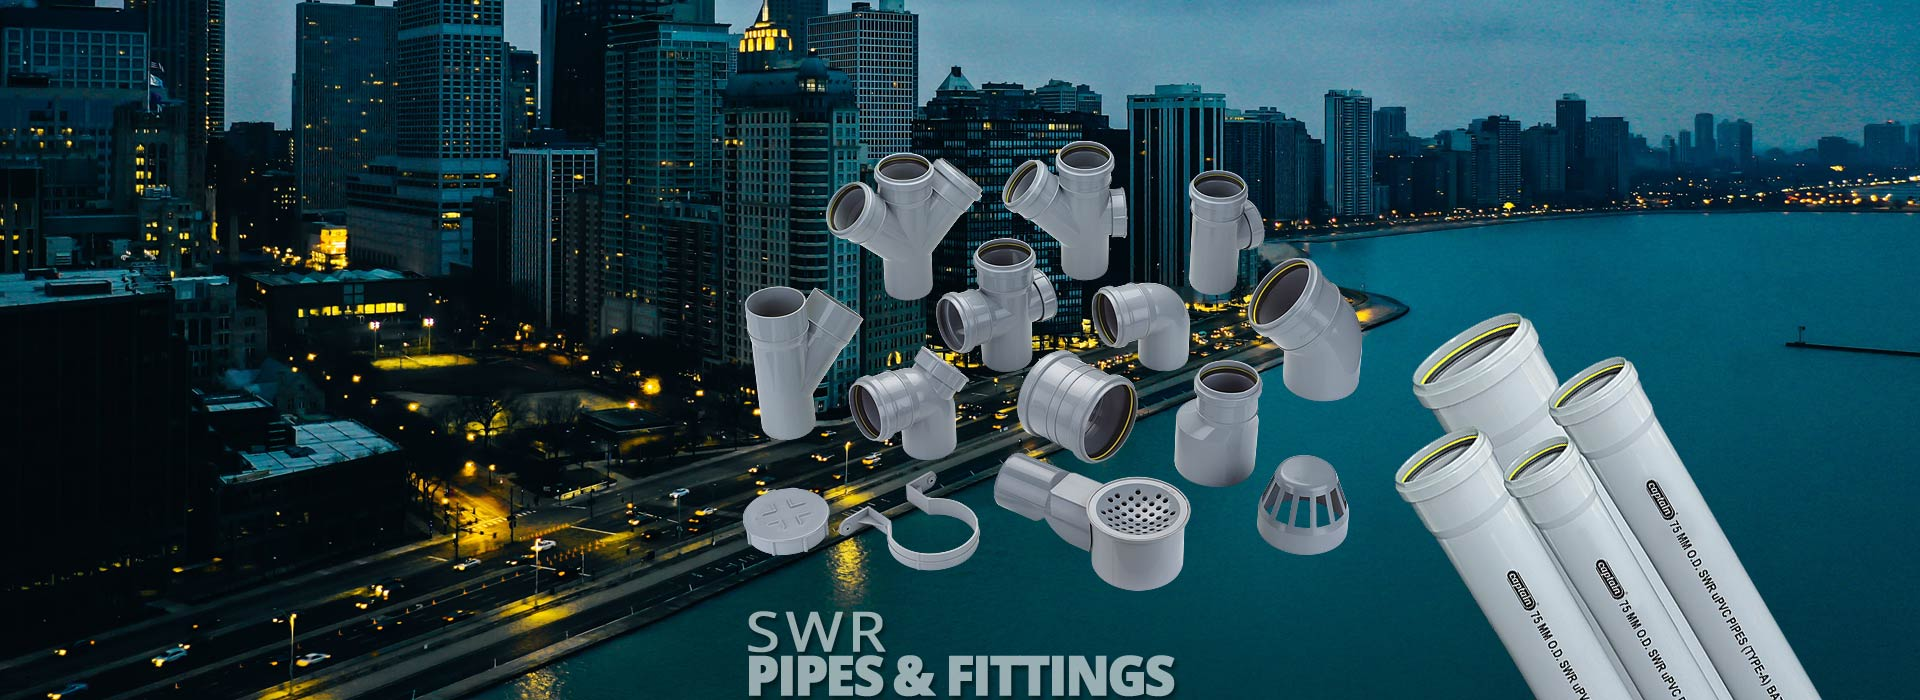 SWR Pipes & Fittings from Captain Pipes Ltd.